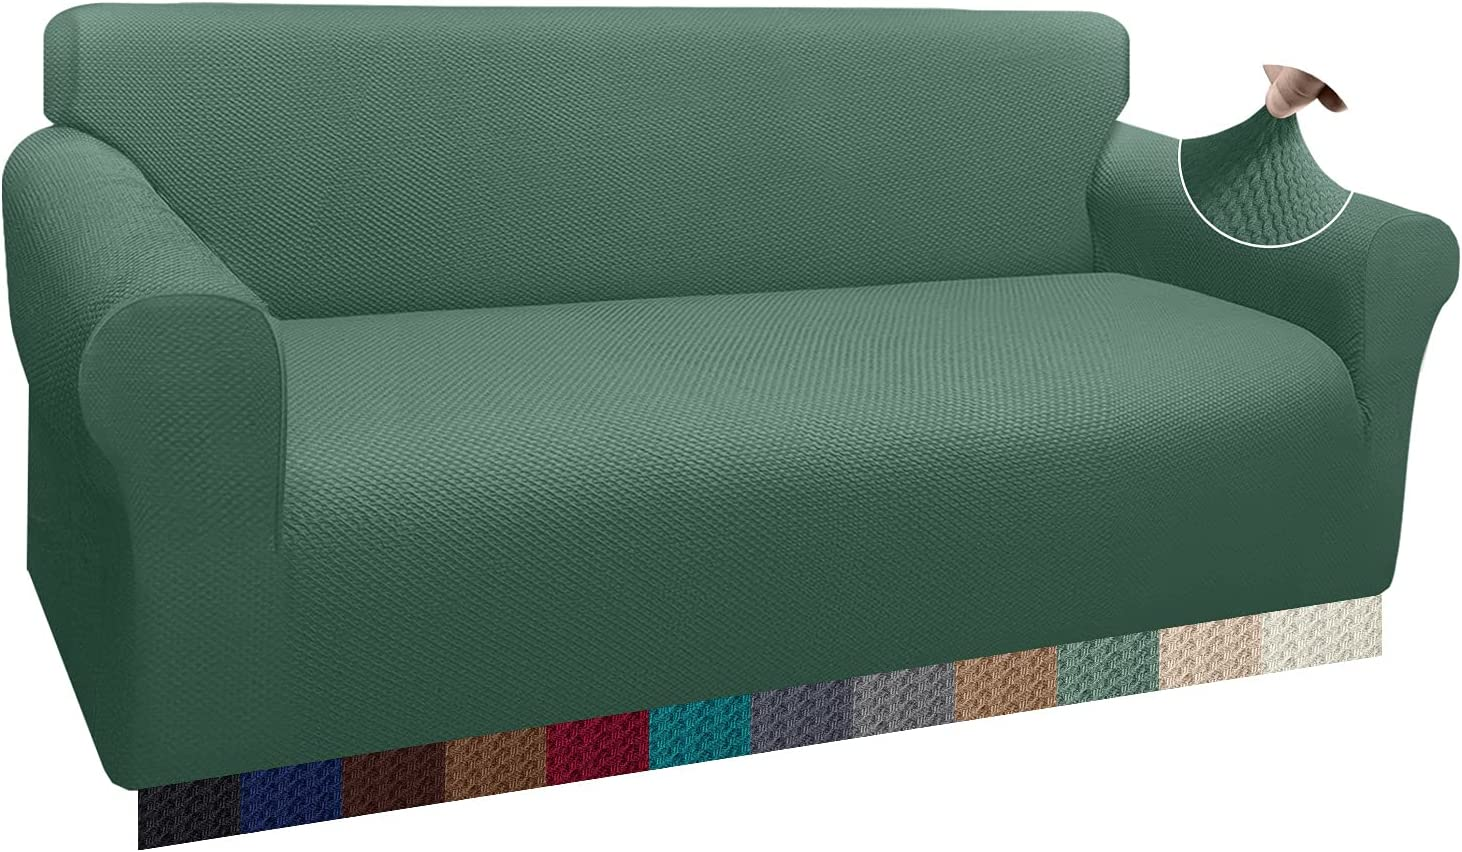 Luxurlife Thick Sale SALE% OFF Sofa Covers New mail order 1-PieceStretch 3 Couch for Cover Cu